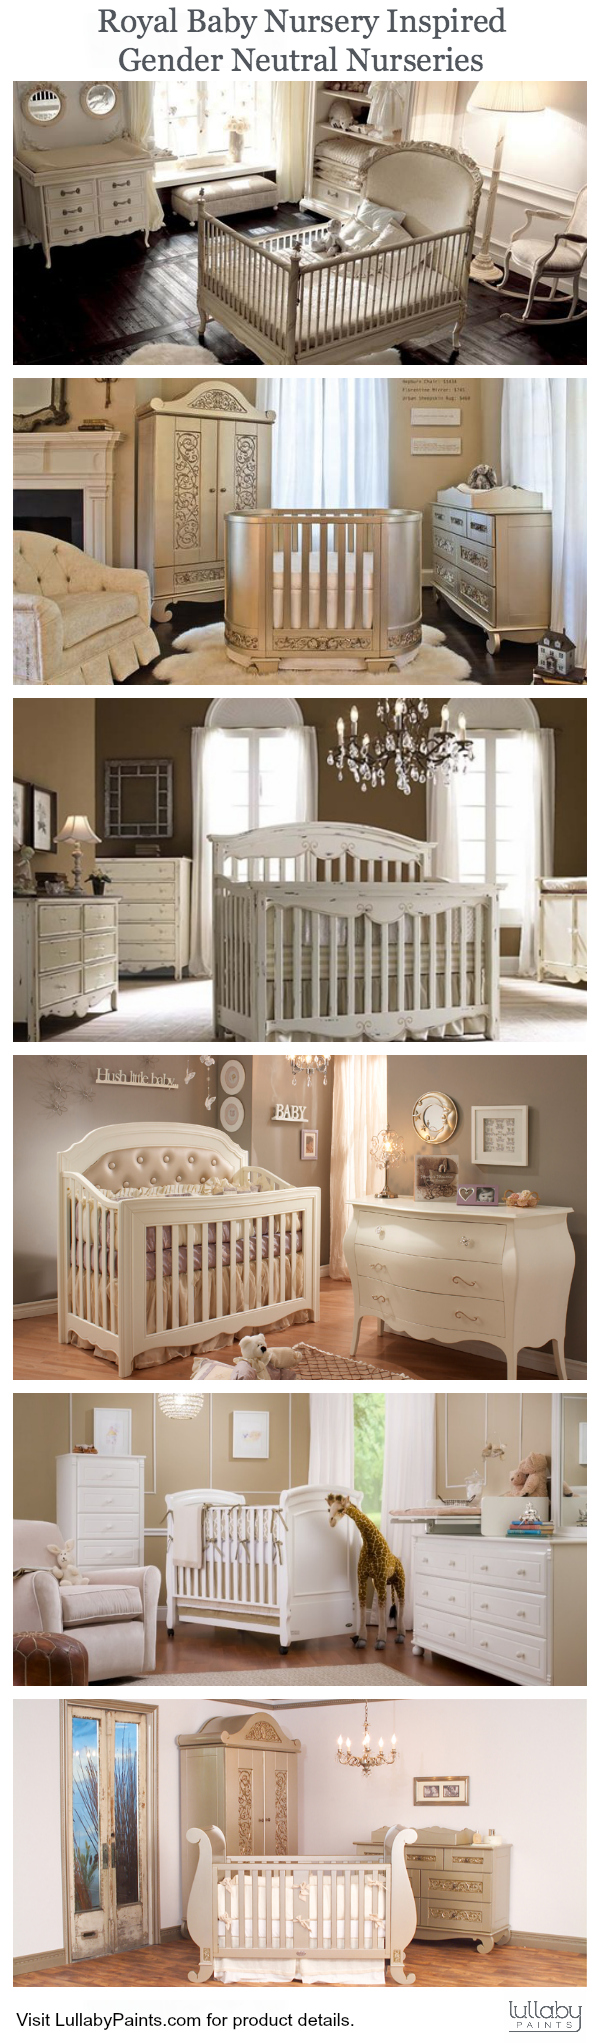 gender neutral, royal baby inspired nursery design - lullaby paints